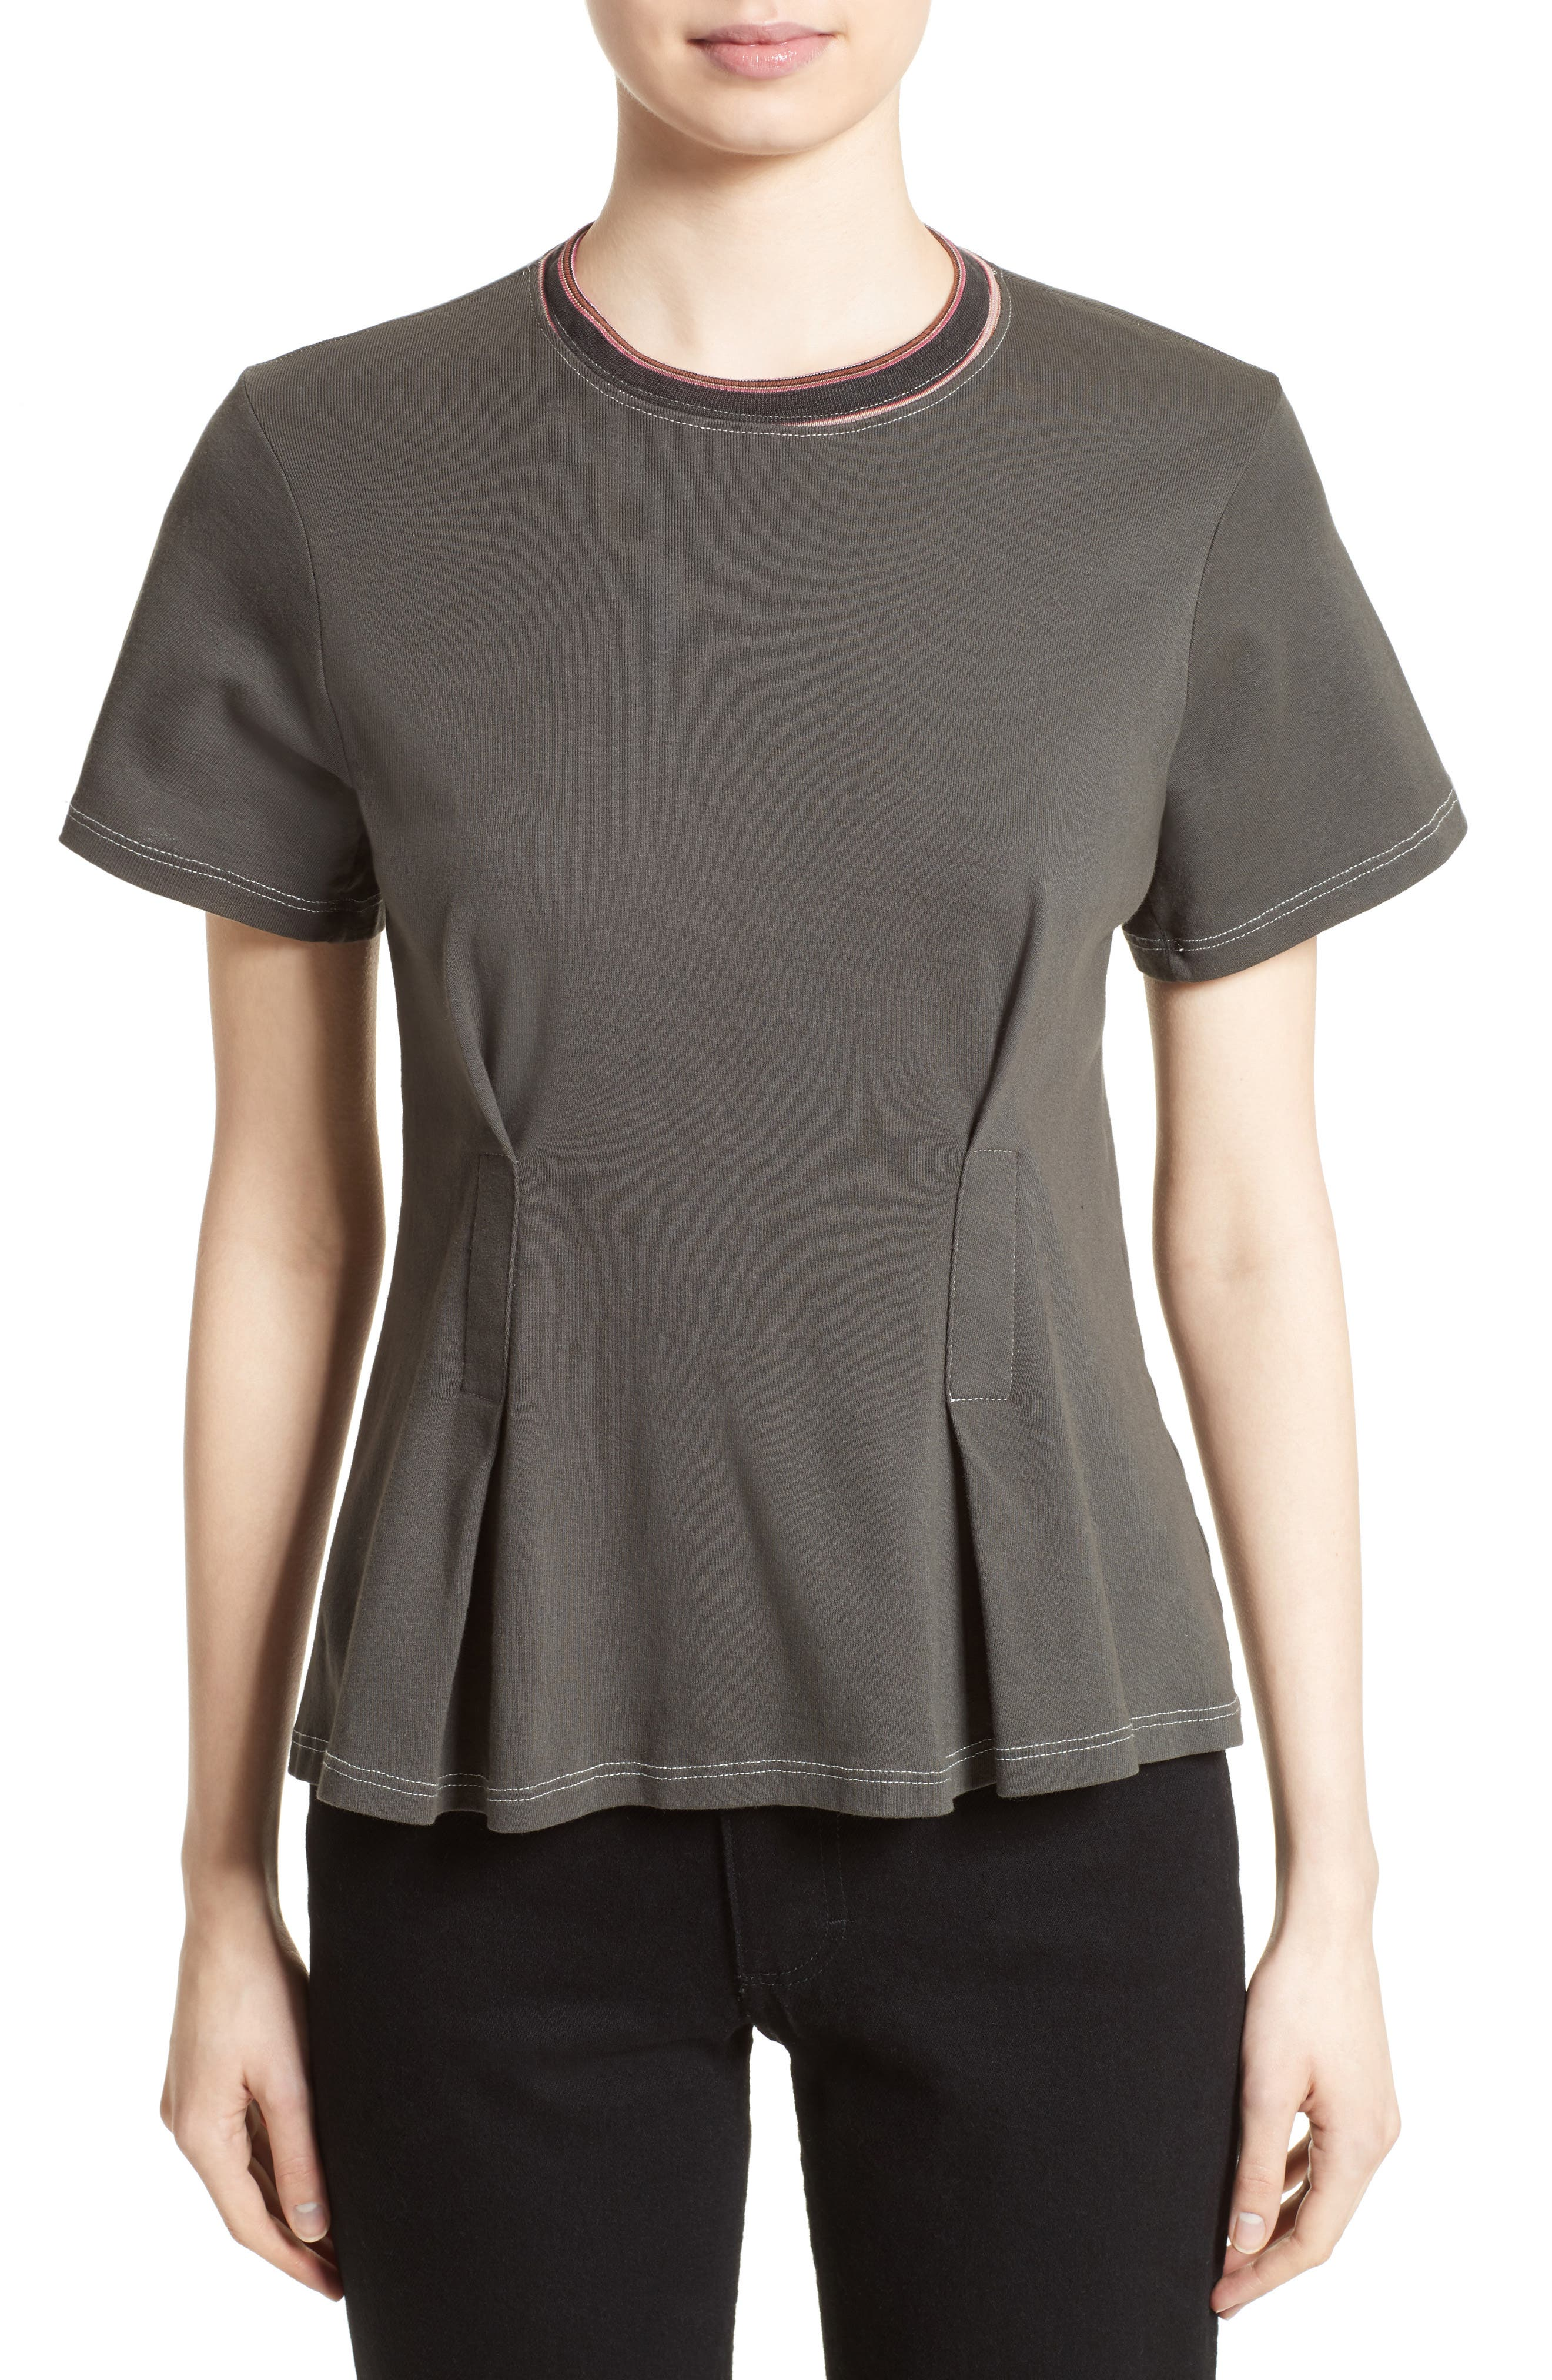 Top Stitch Tee,                             Main thumbnail 1, color,                             020